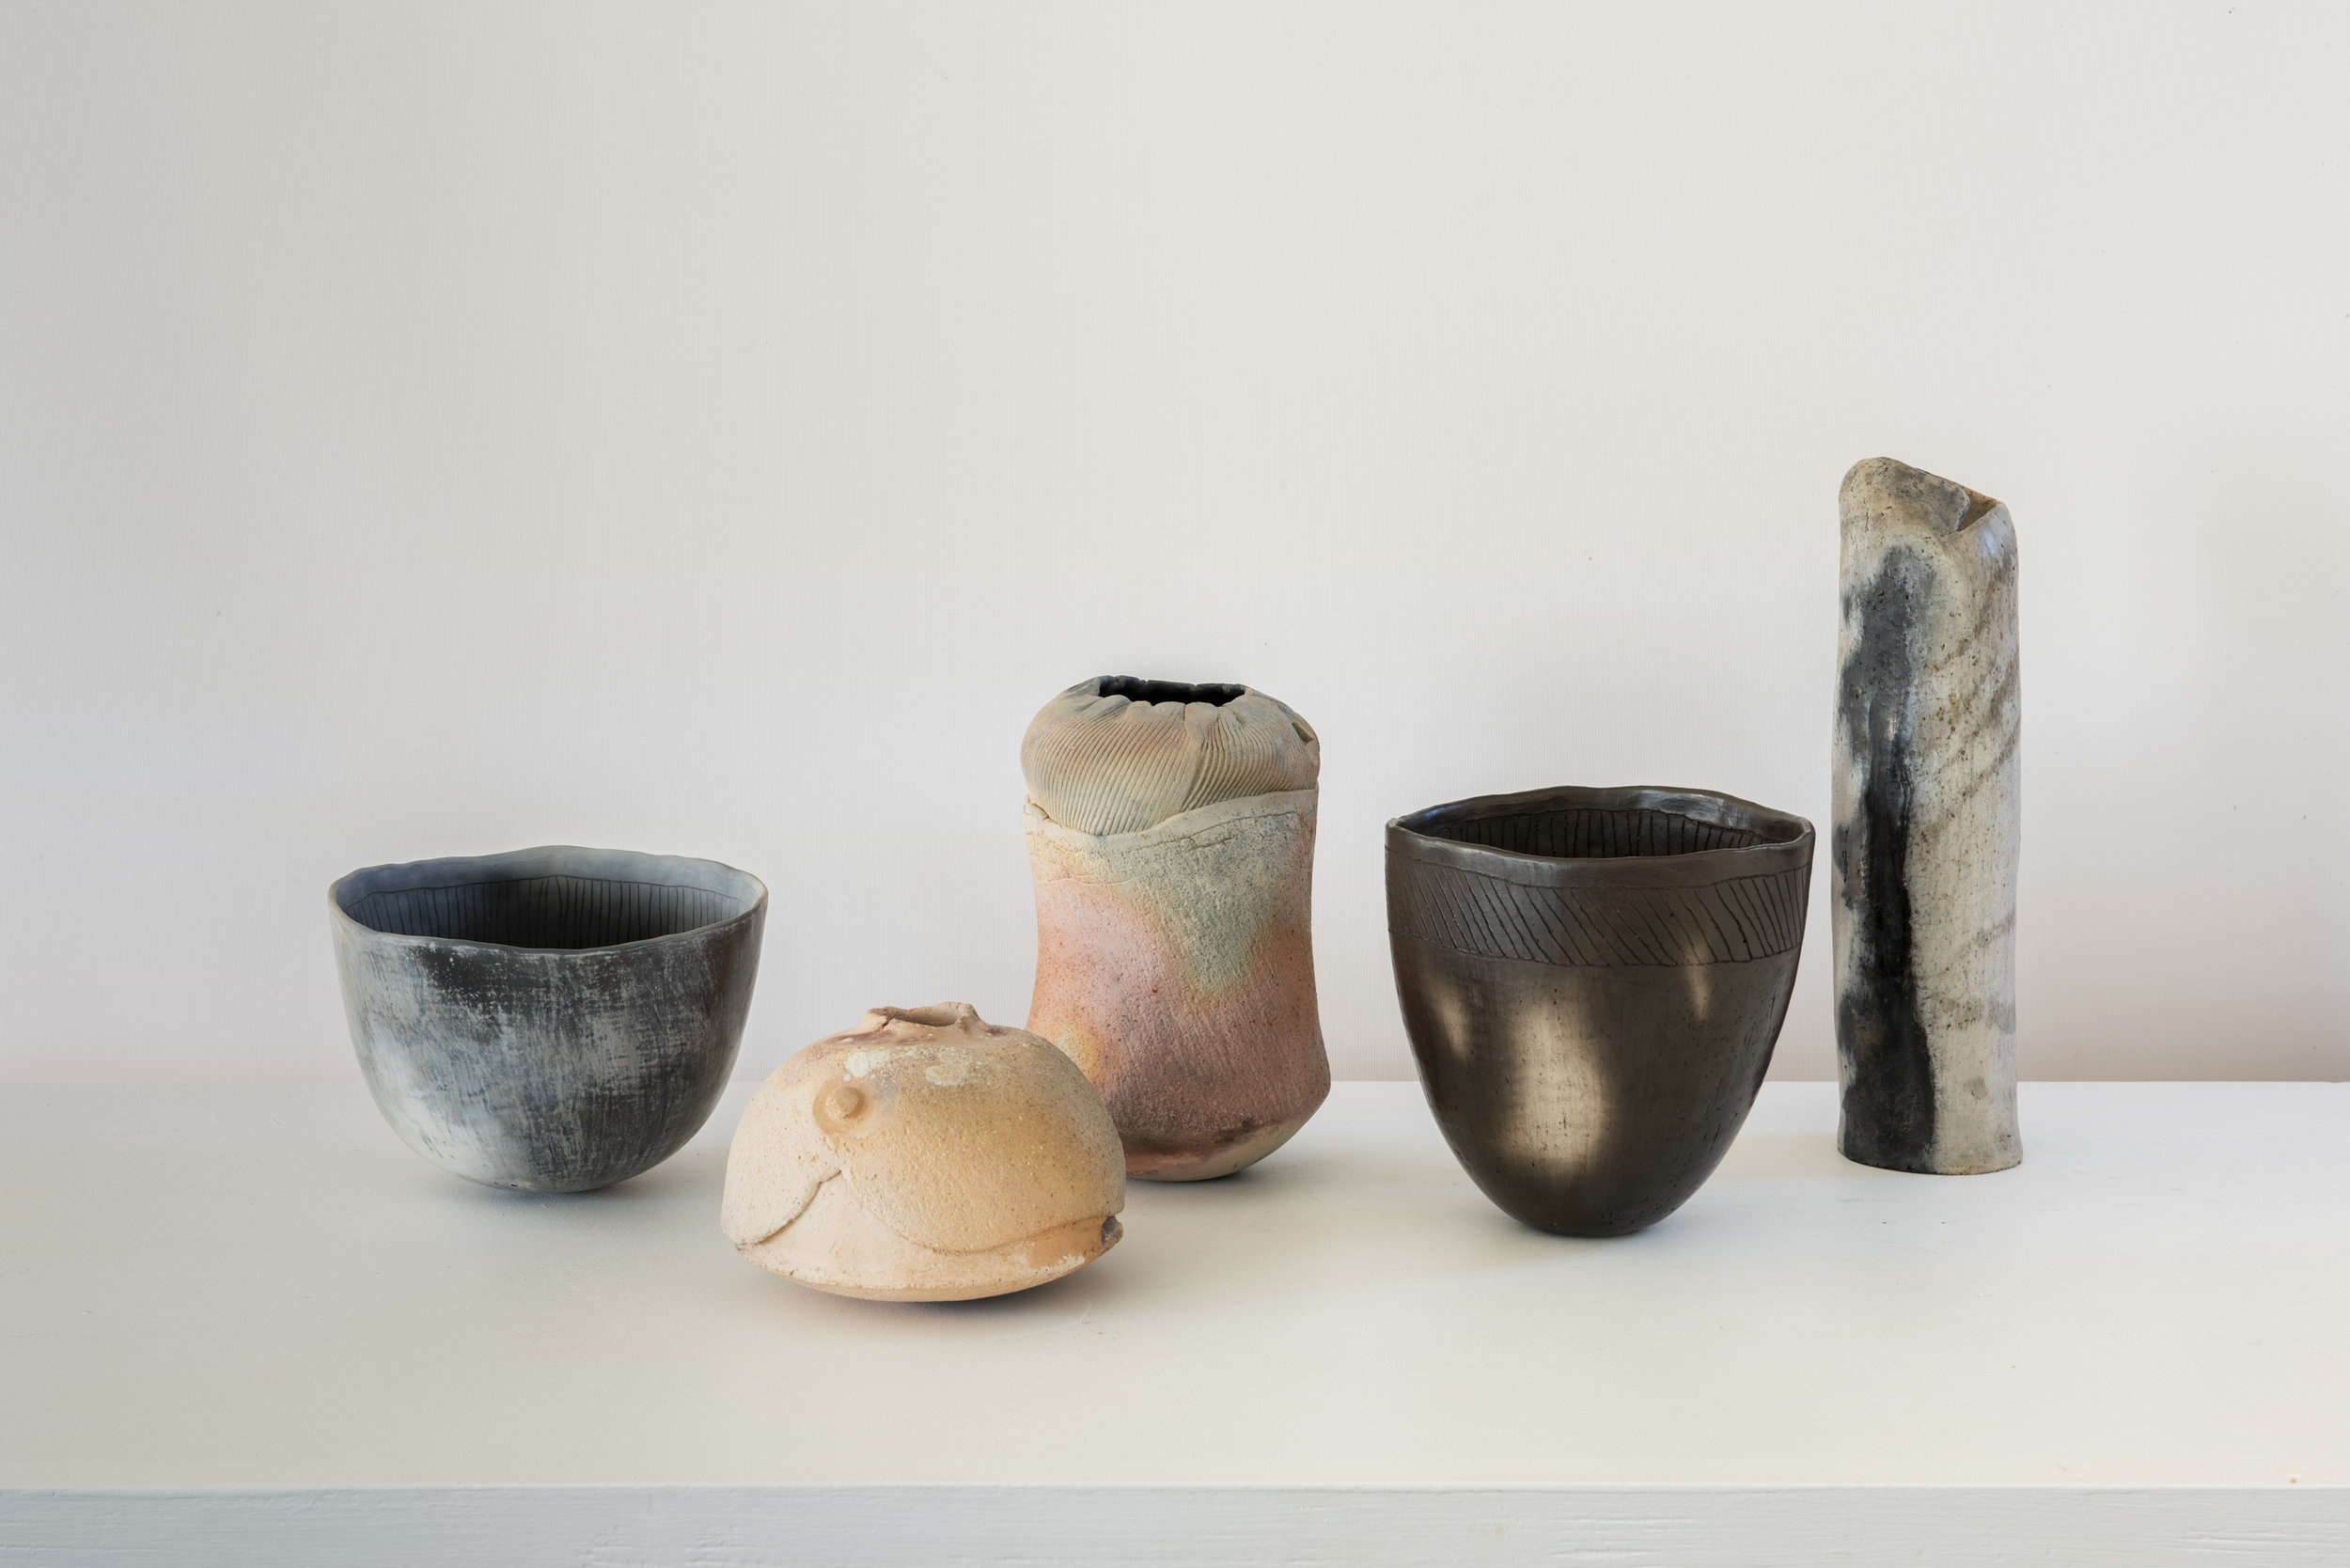 jill_symes__pinched__coiled_primitive_fired_ceramics_cs1306201941_copy.jpg